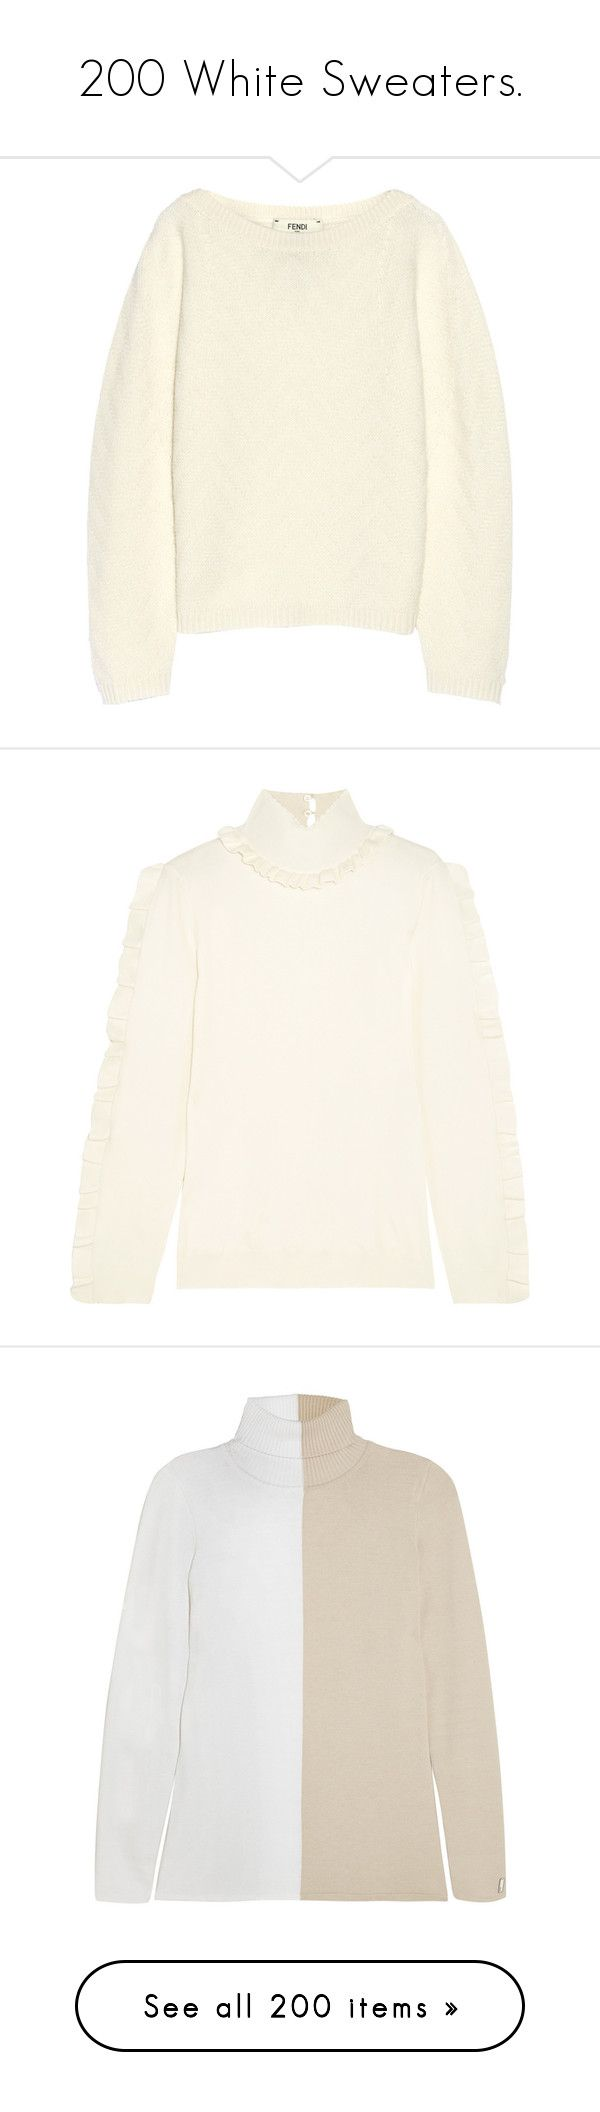 """""""200 White Sweaters."""" by that-drumming-noise ❤ liked on Polyvore featuring tops, sweaters, fendi, cashmere, white, chevron tops, cashmere sweater, loose sweaters, loose tops and loose fit tops"""